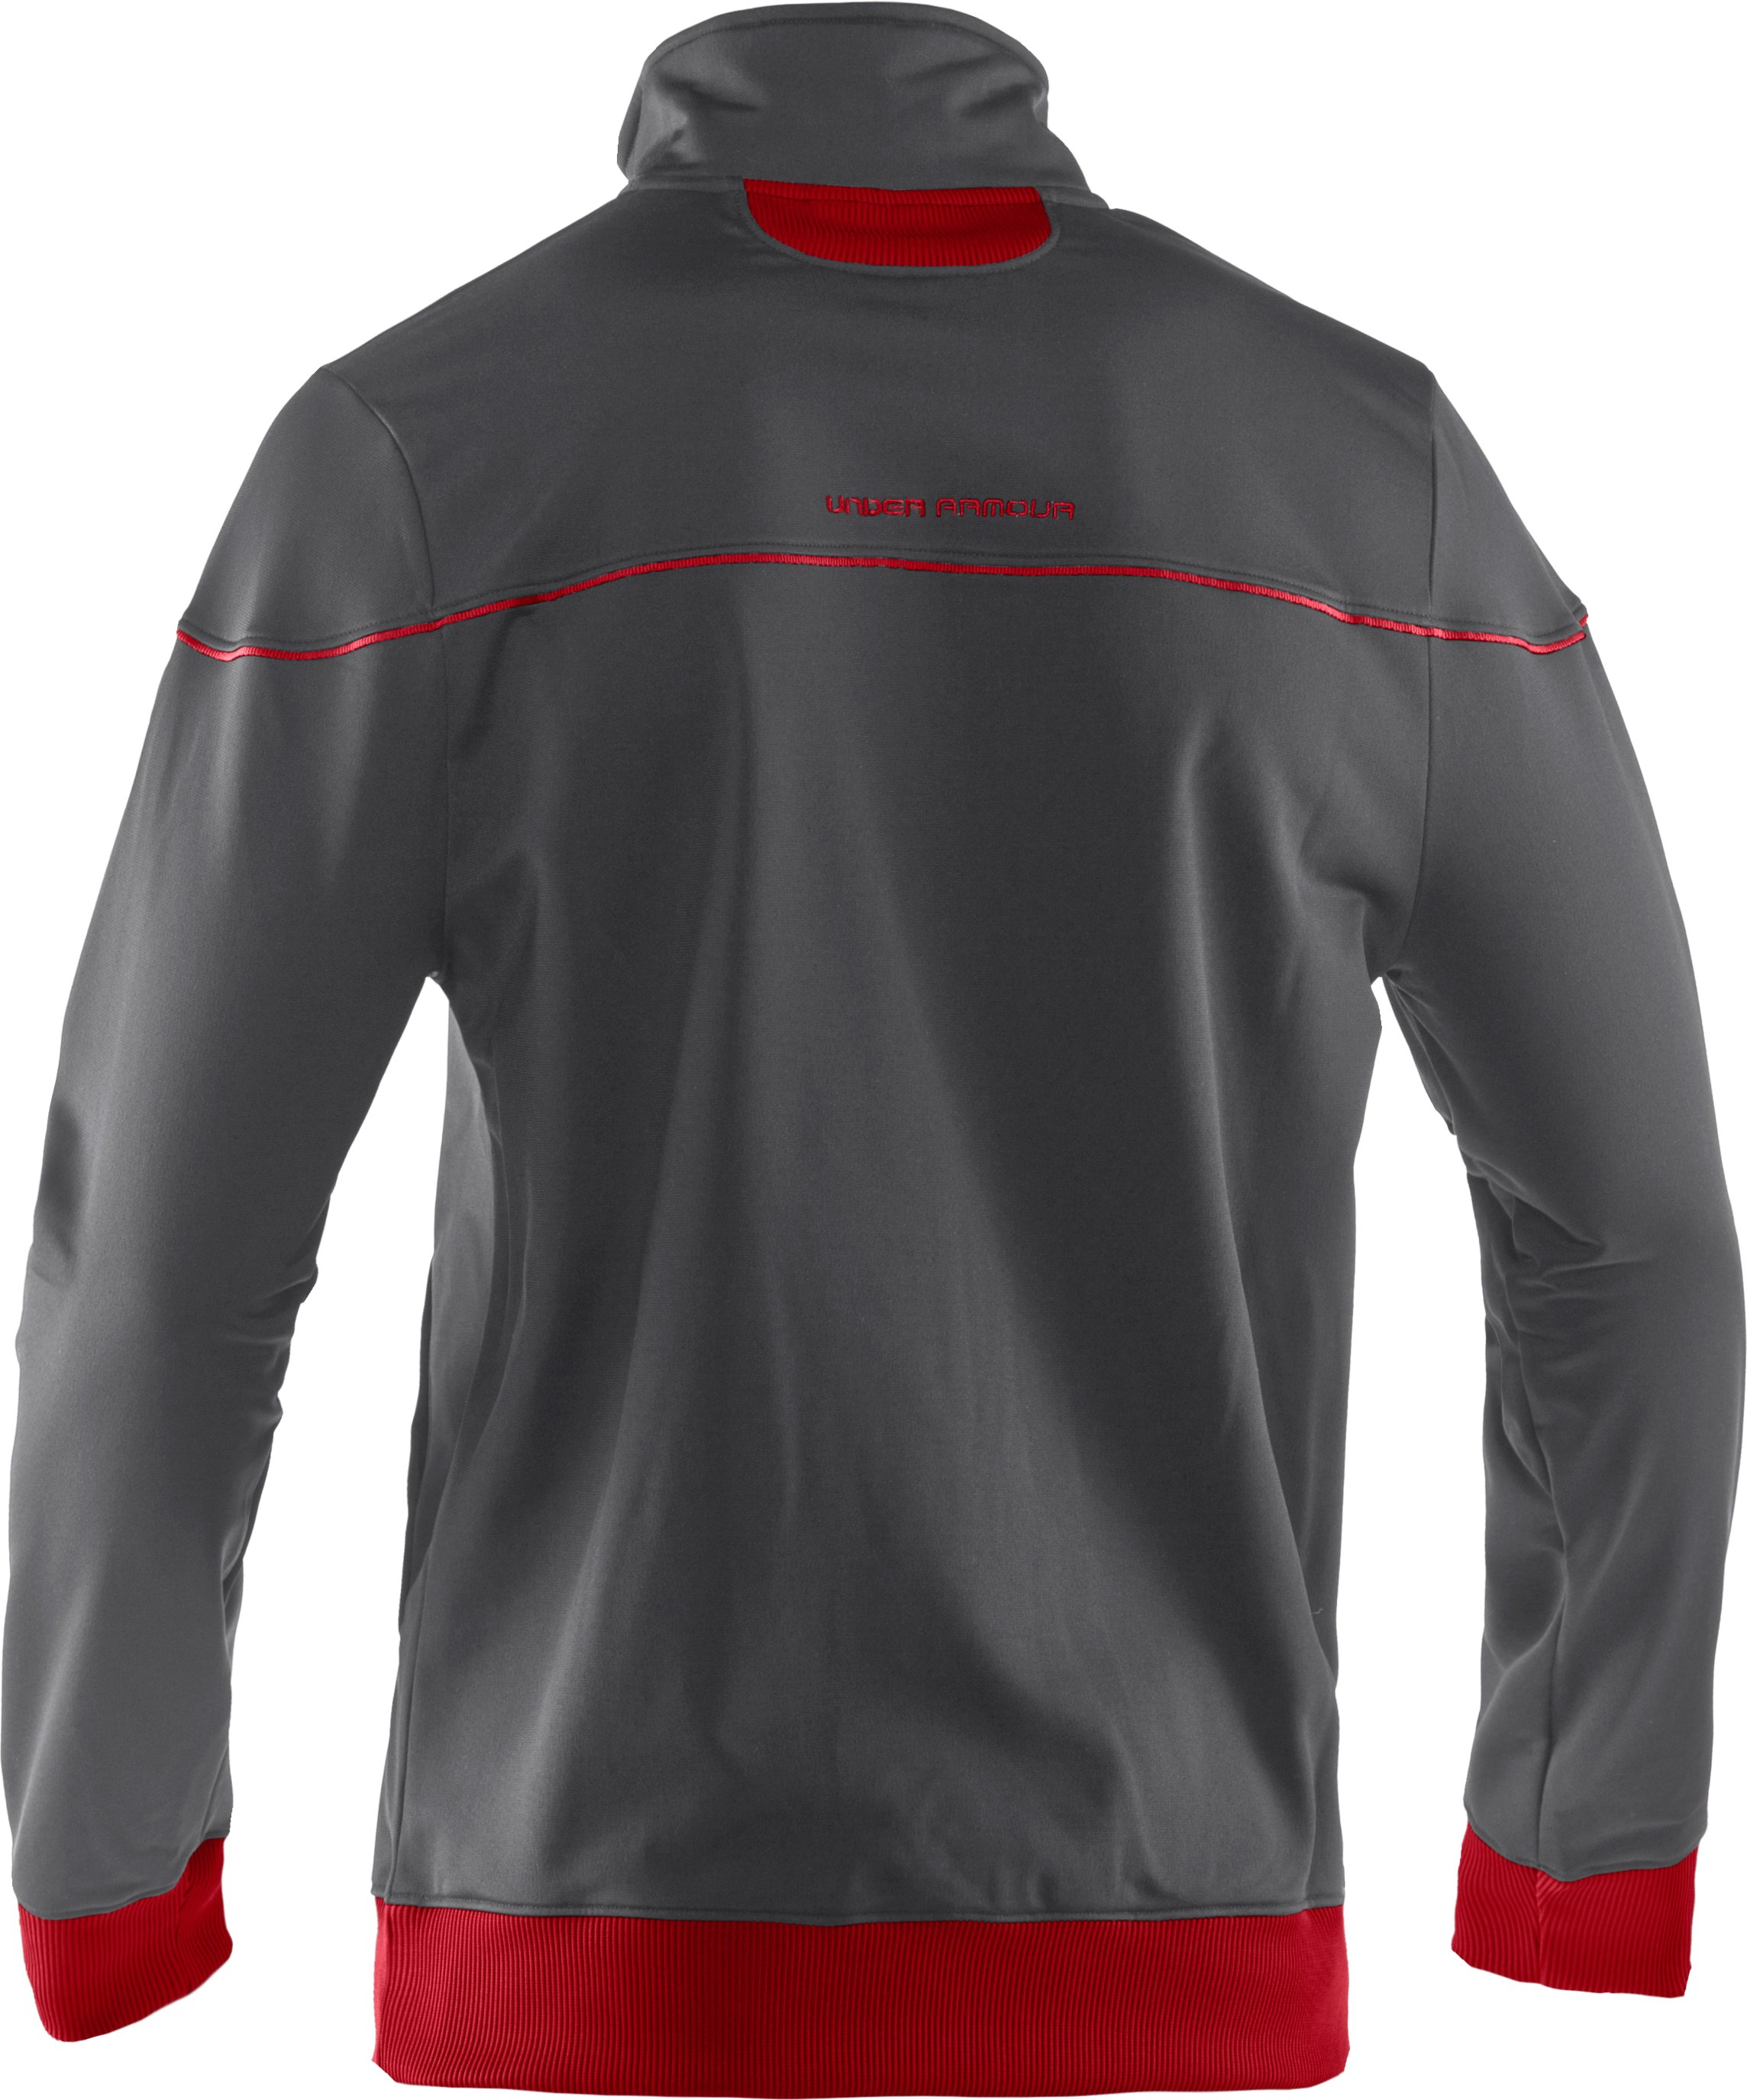 Men's UA Strength Track Jacket, Graphite